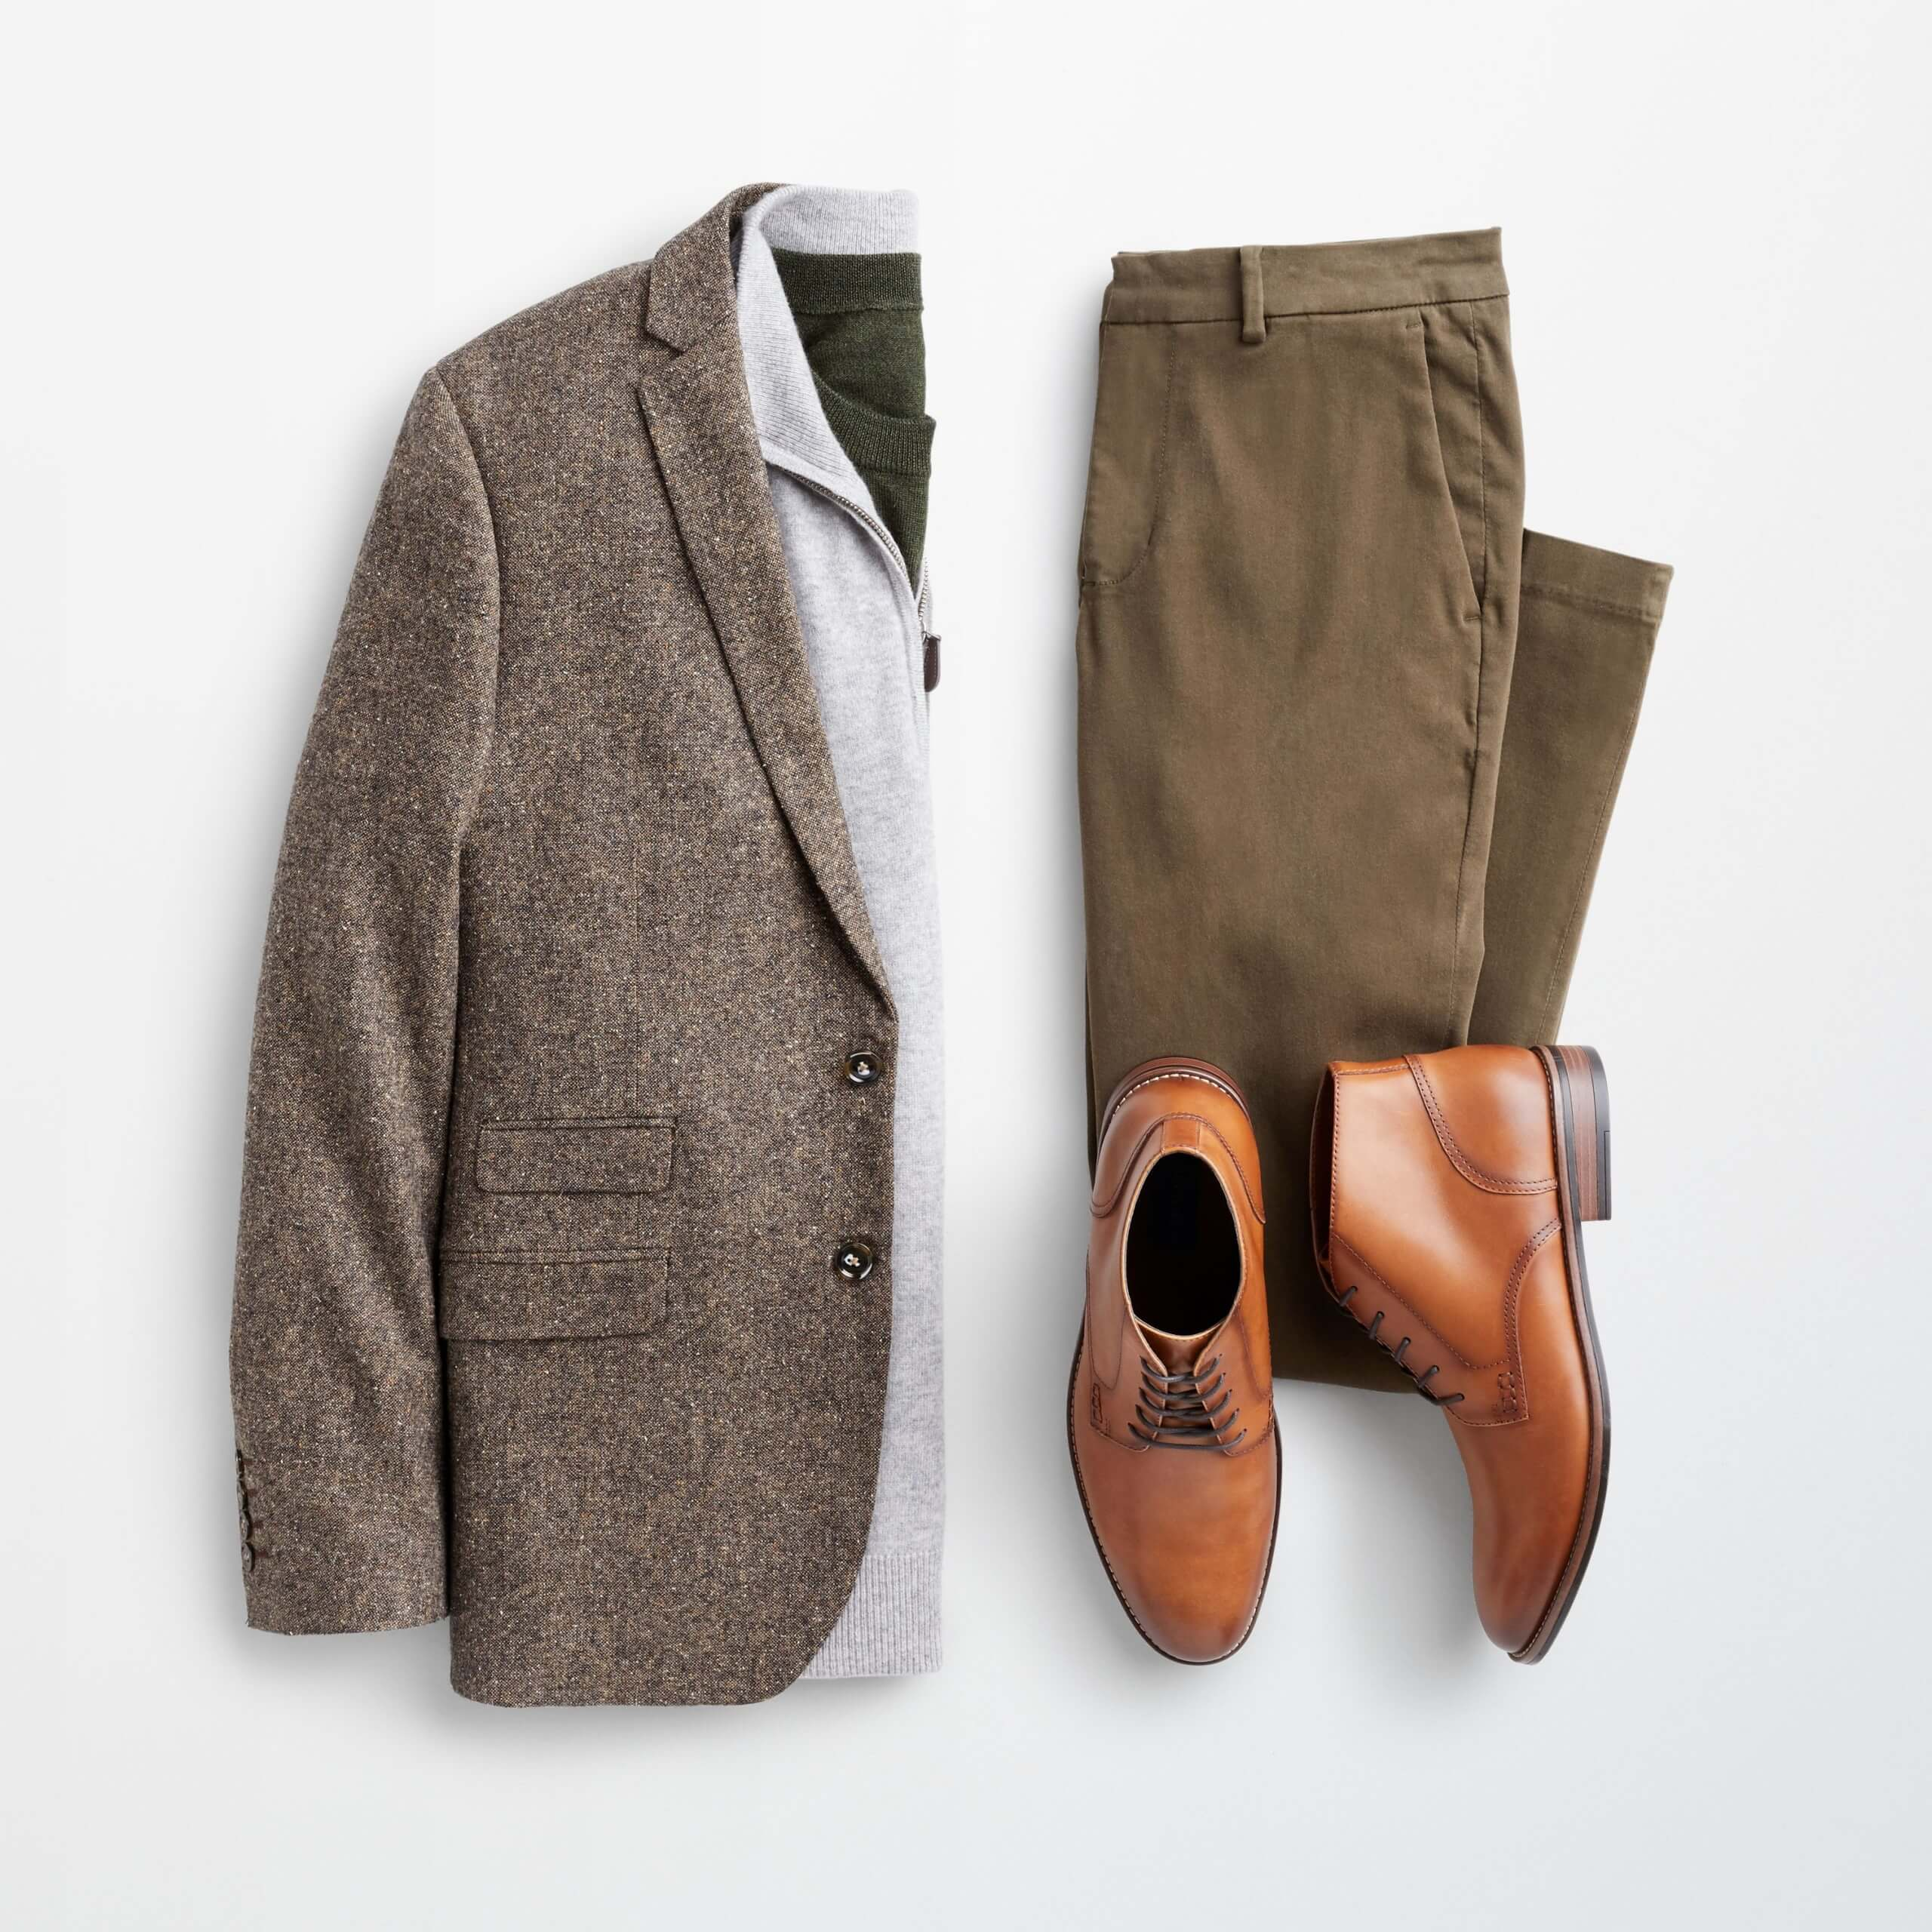 Stitch Fix Men's outfit laydown featuring brown blazer over grey quarter-zip wool sweater, next to olive-green trousers and brown leather chukkas.